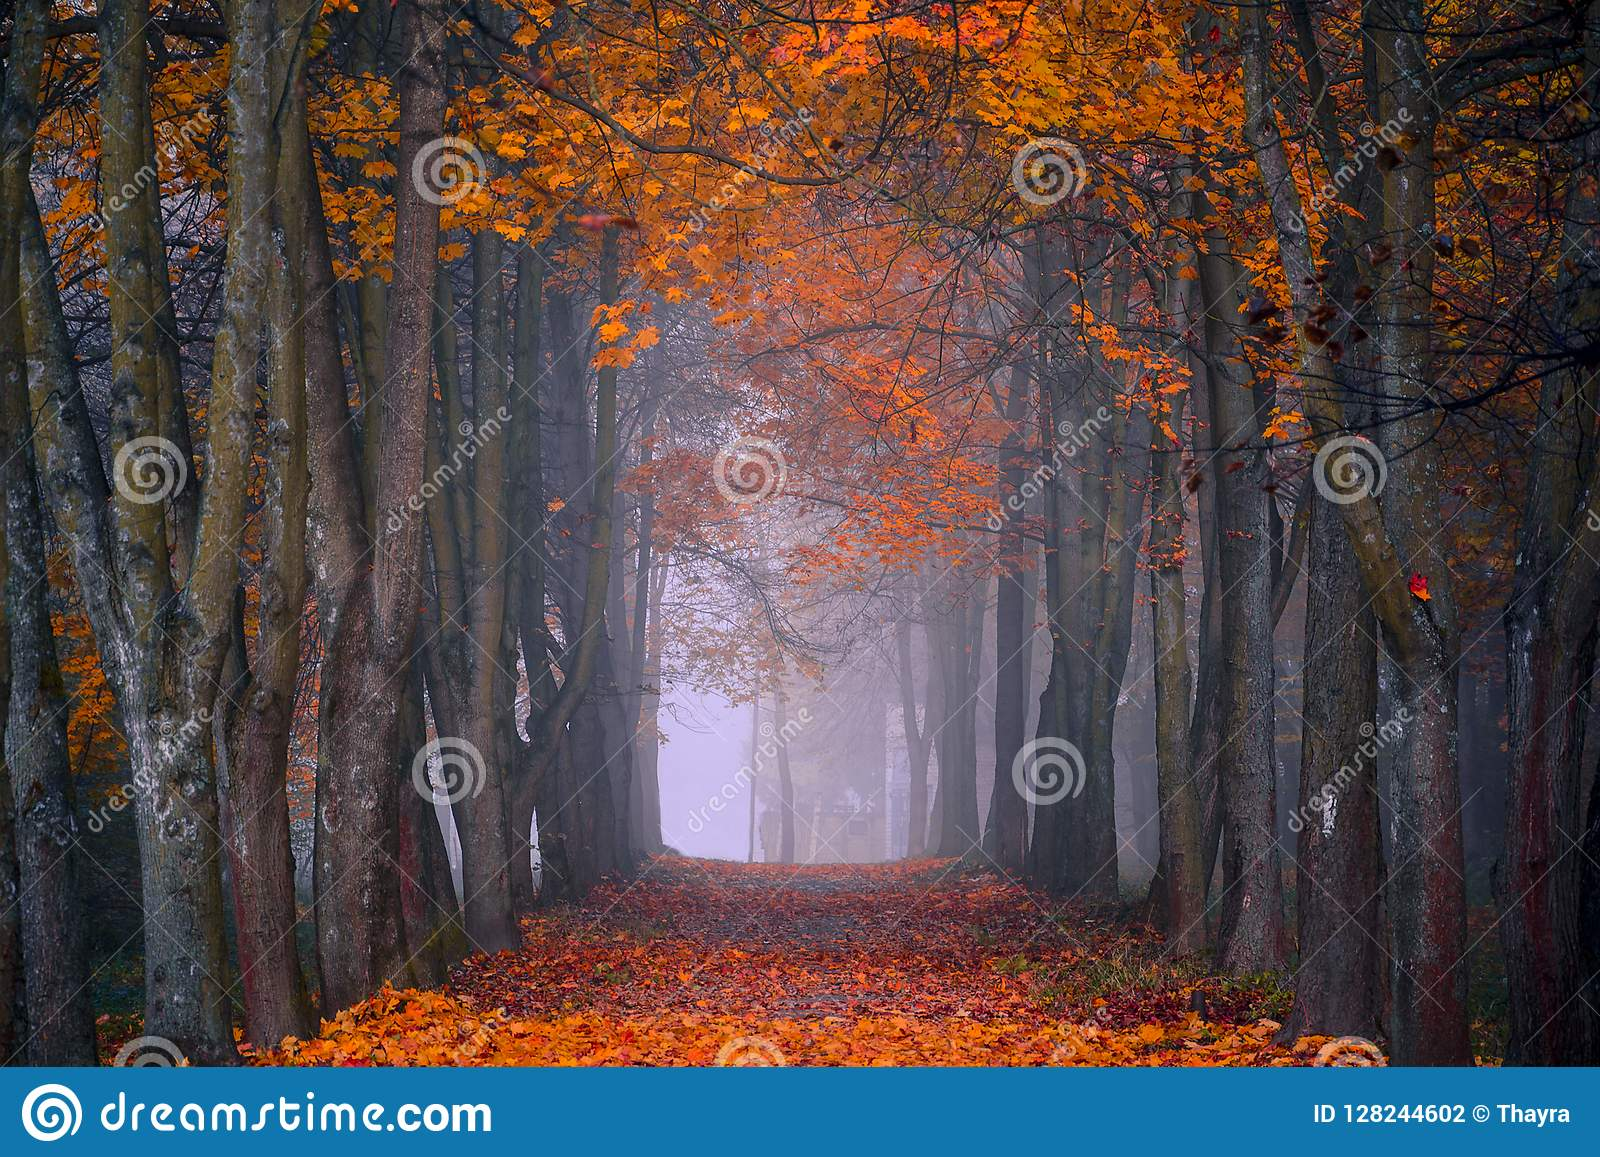 Autumn fall. Foggy morning in the maple forest. Vibrant colors